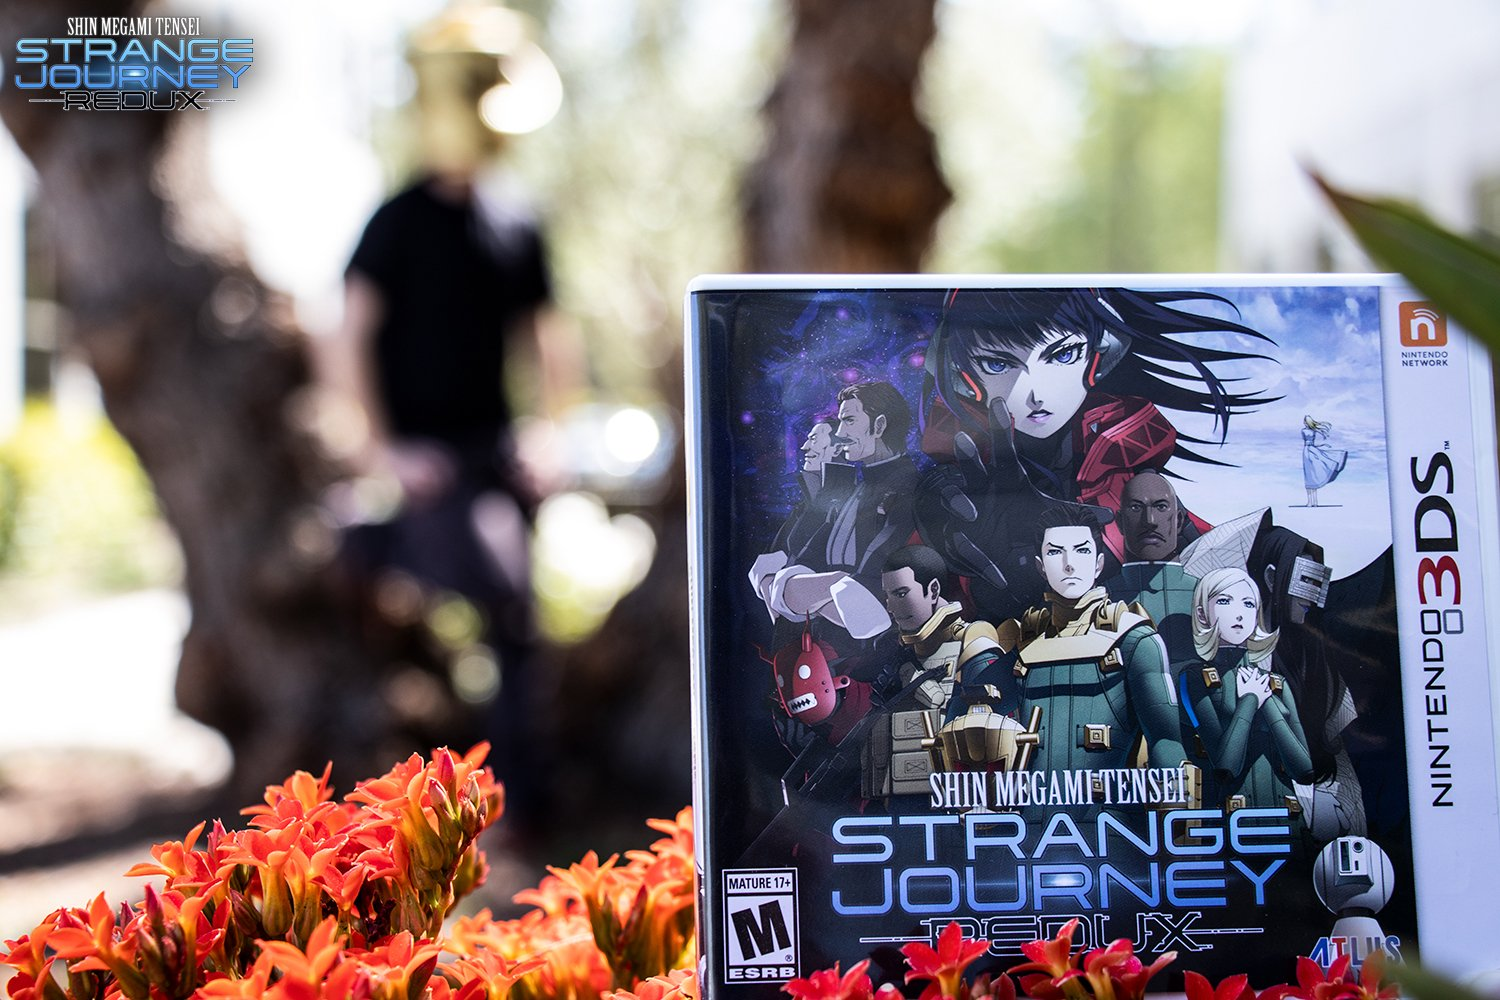 Shin Megami Tensei: Strange Journey Redux is now available! Grab your copy today at https://t.co/p19VicoNbx https://t.co/pgtSQZ2aOd